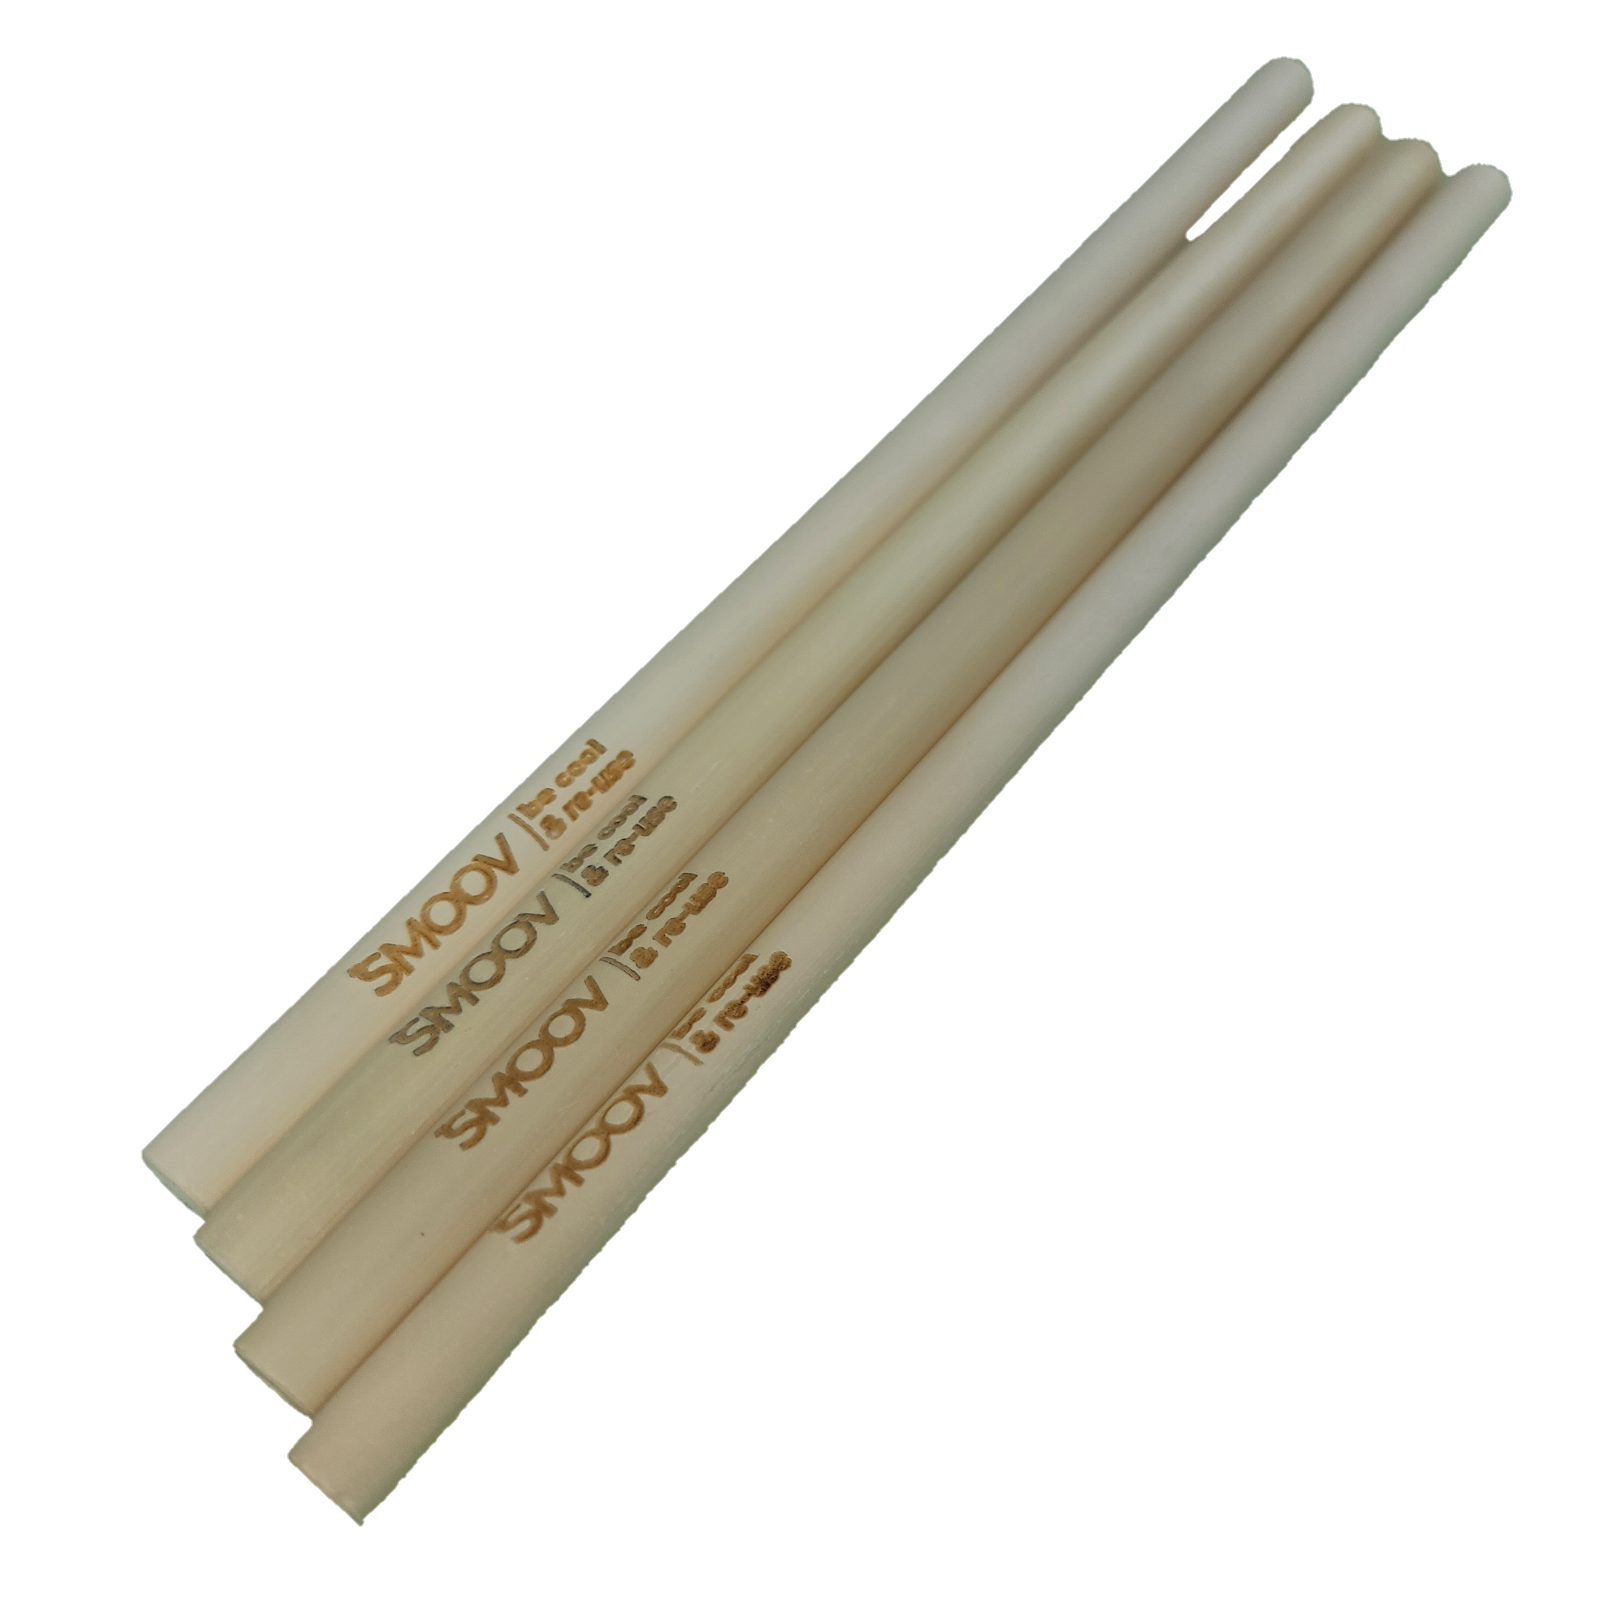 Kickstart your zero waste lifestyle with our eco friendly Bamboo Straws that'll make you feel like you're on a beach!